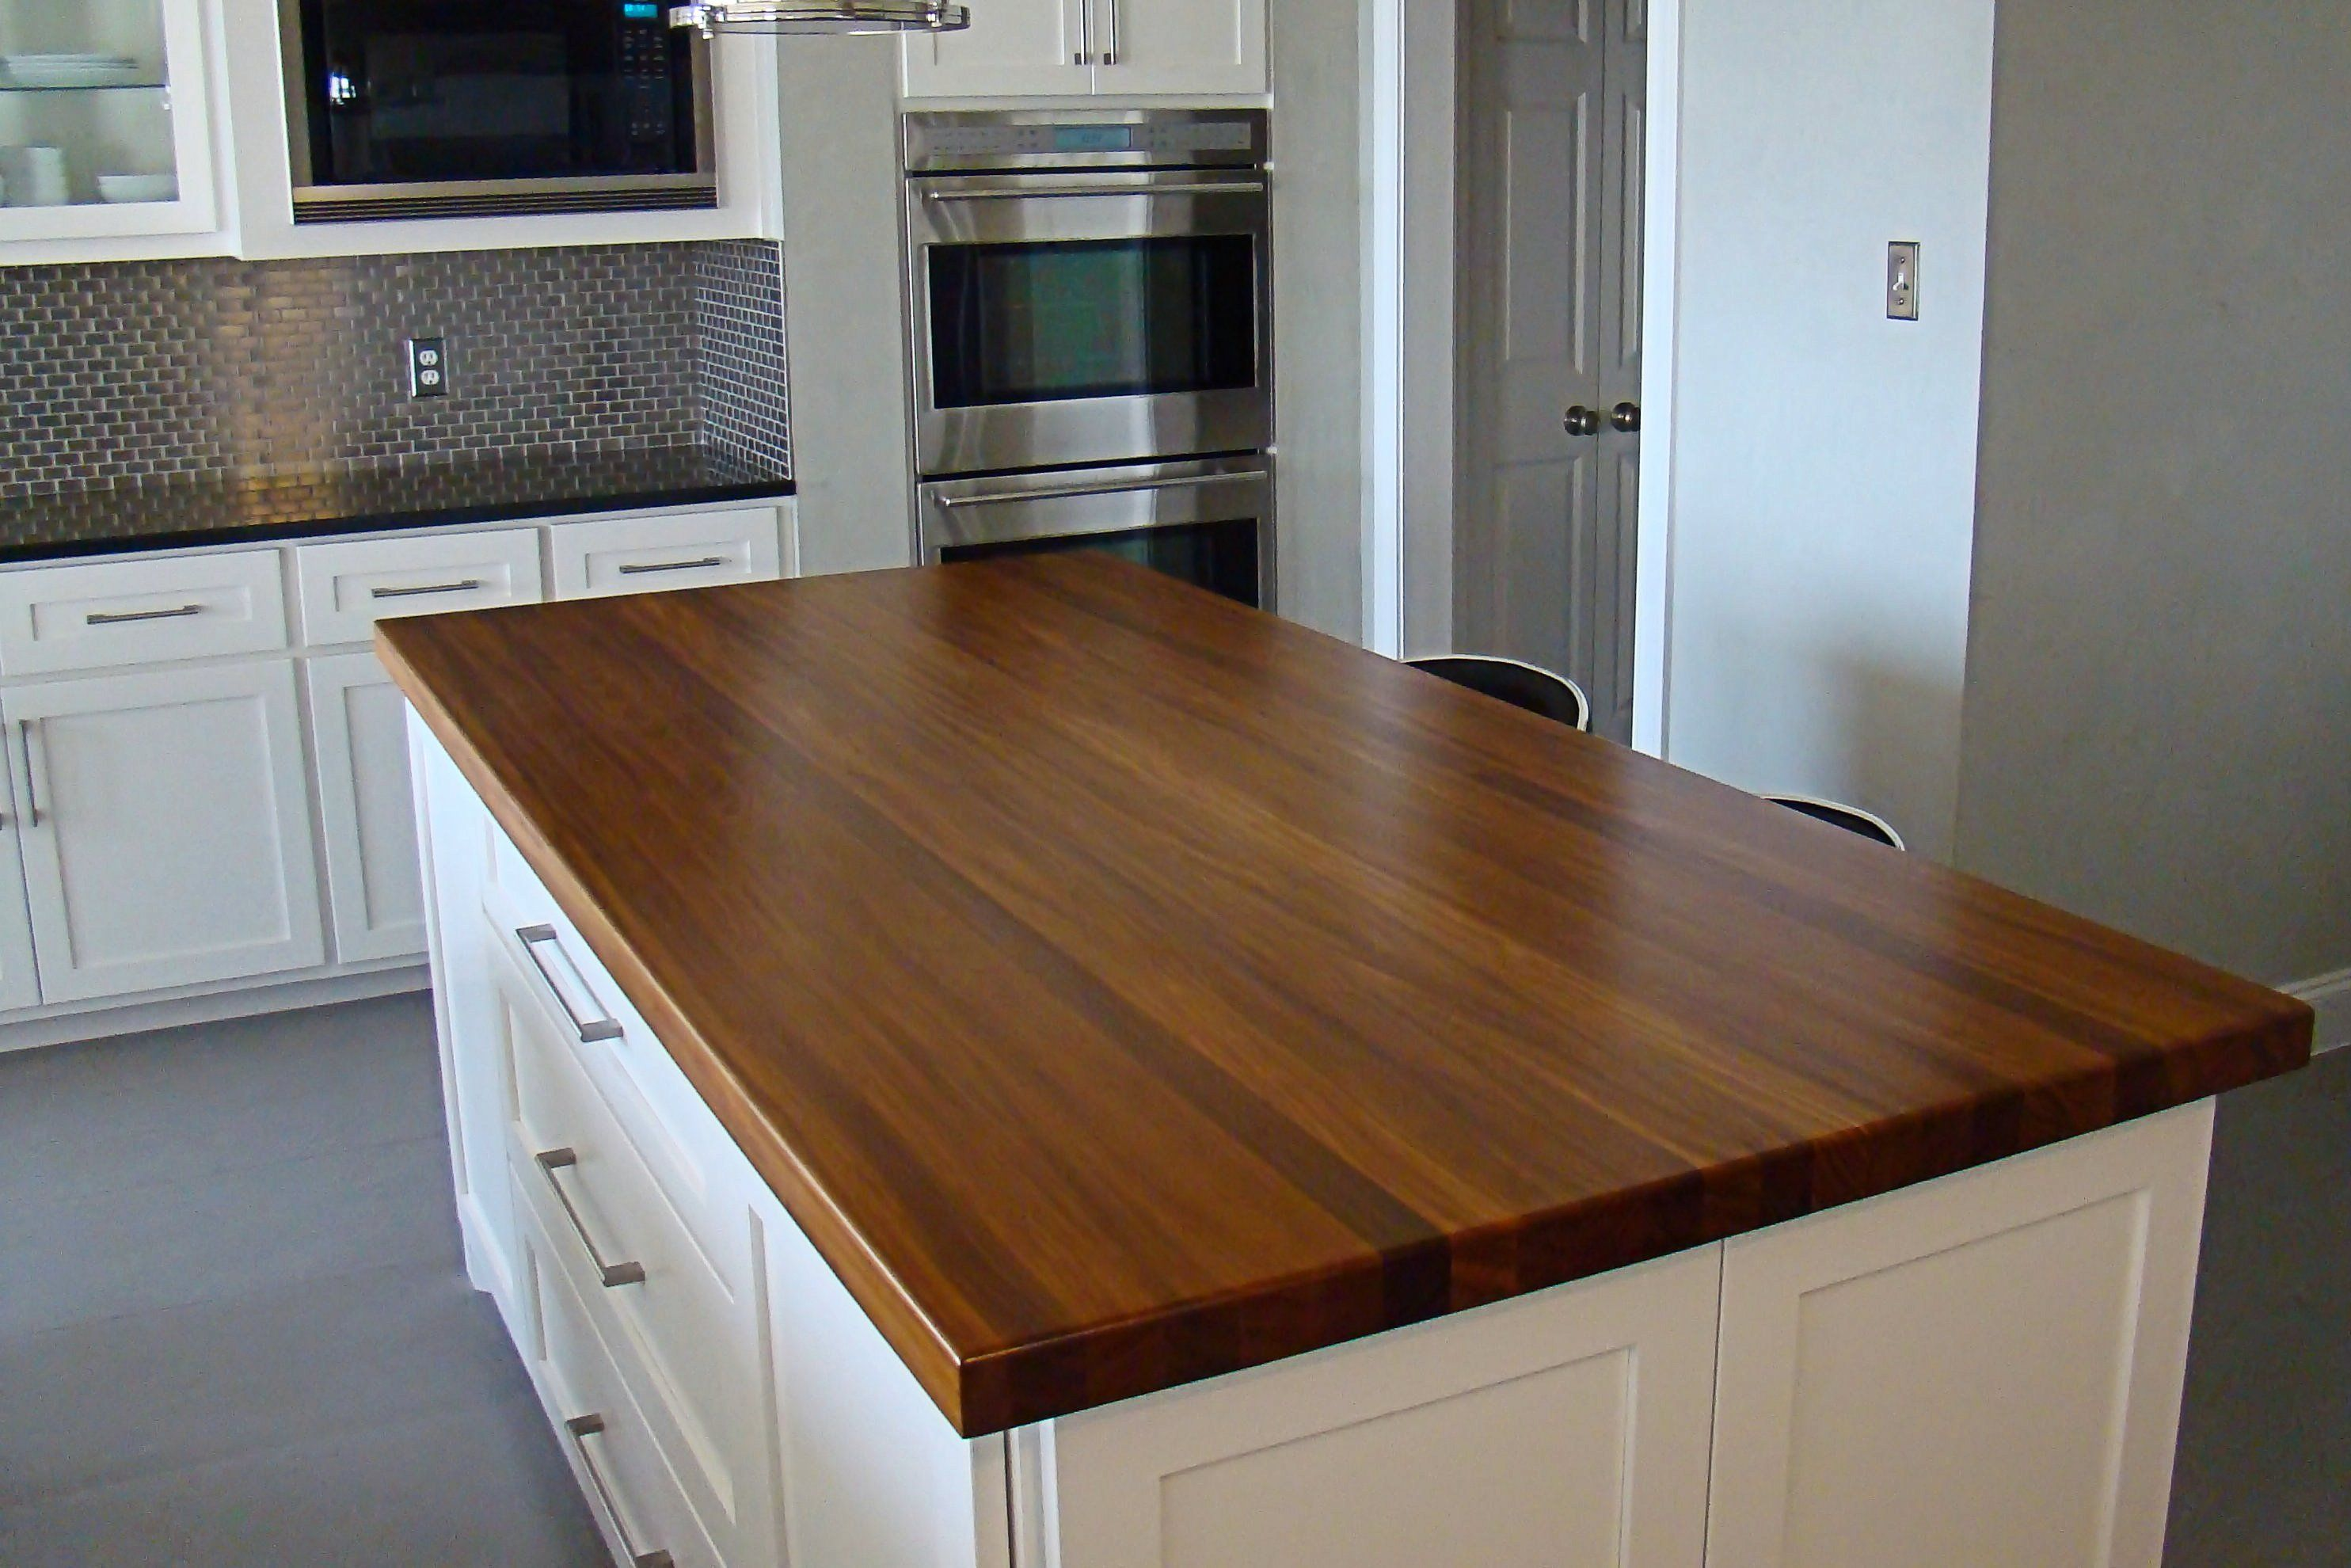 Afromosia edge grain custom wood island countertop